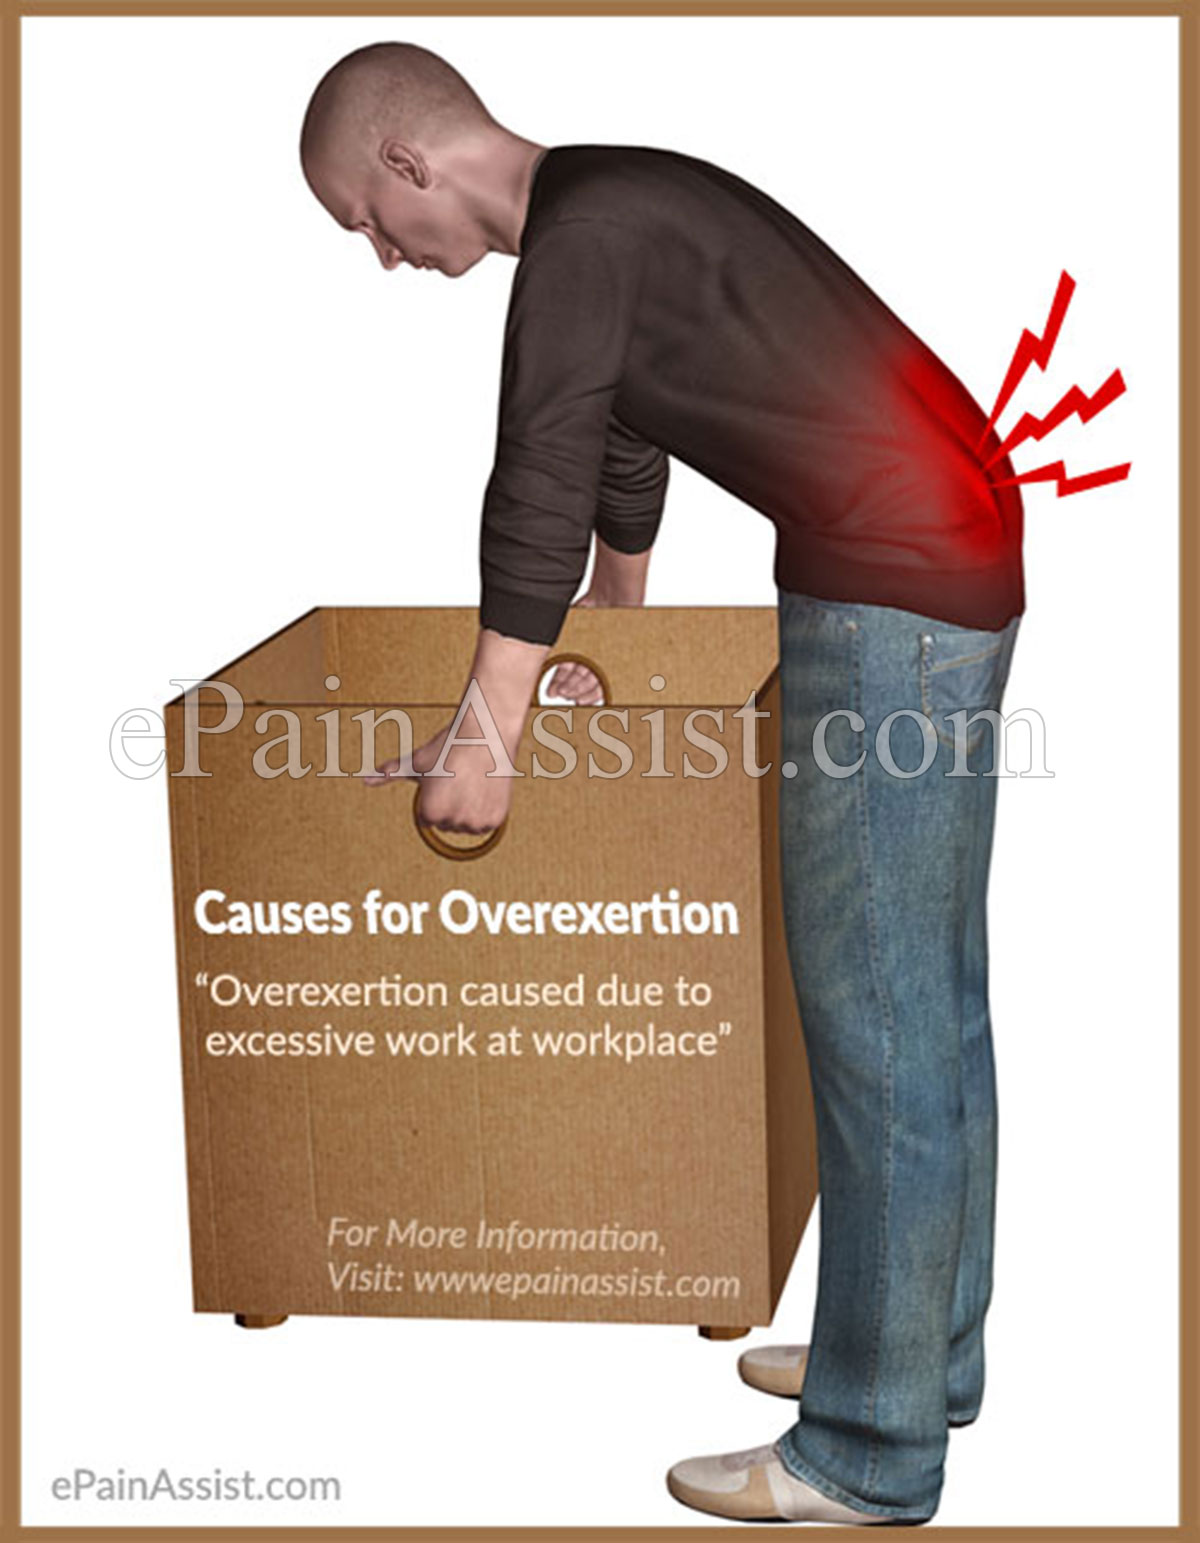 Overexertion: Signs, Symptoms, Causes, Treatment, Prevention